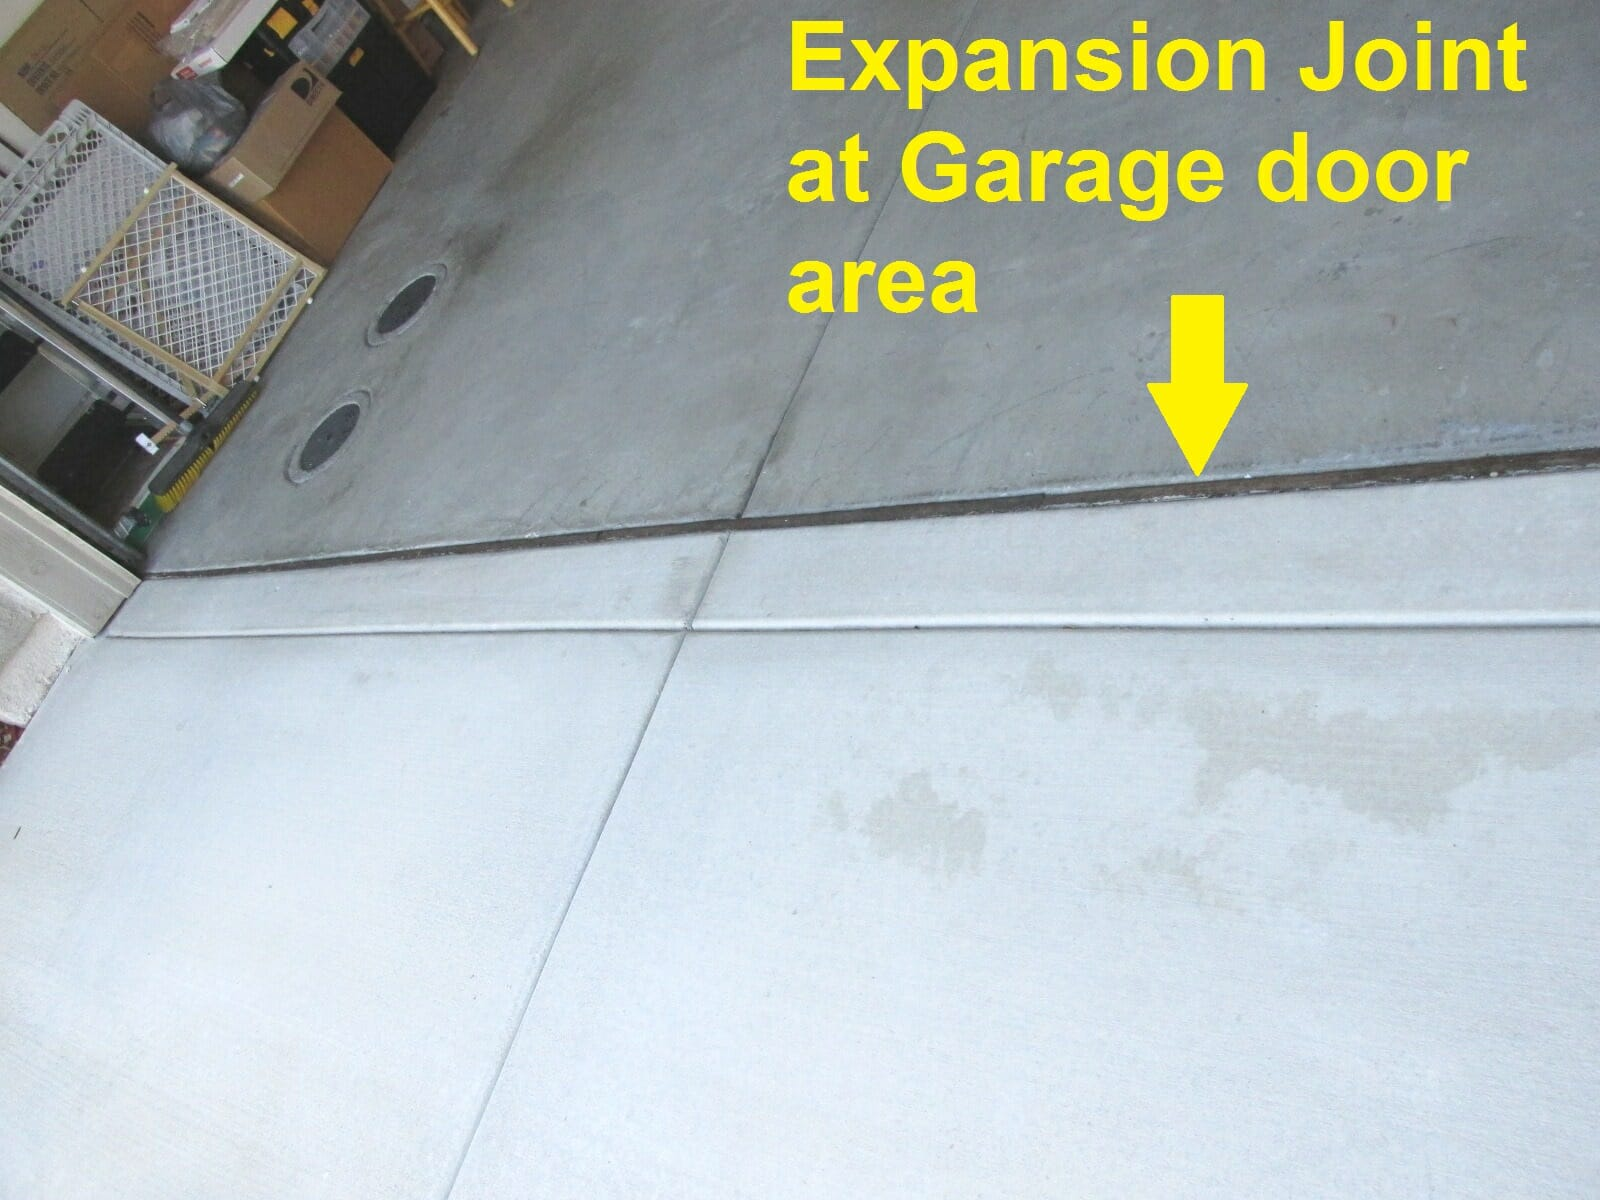 Expansion joint at garage door